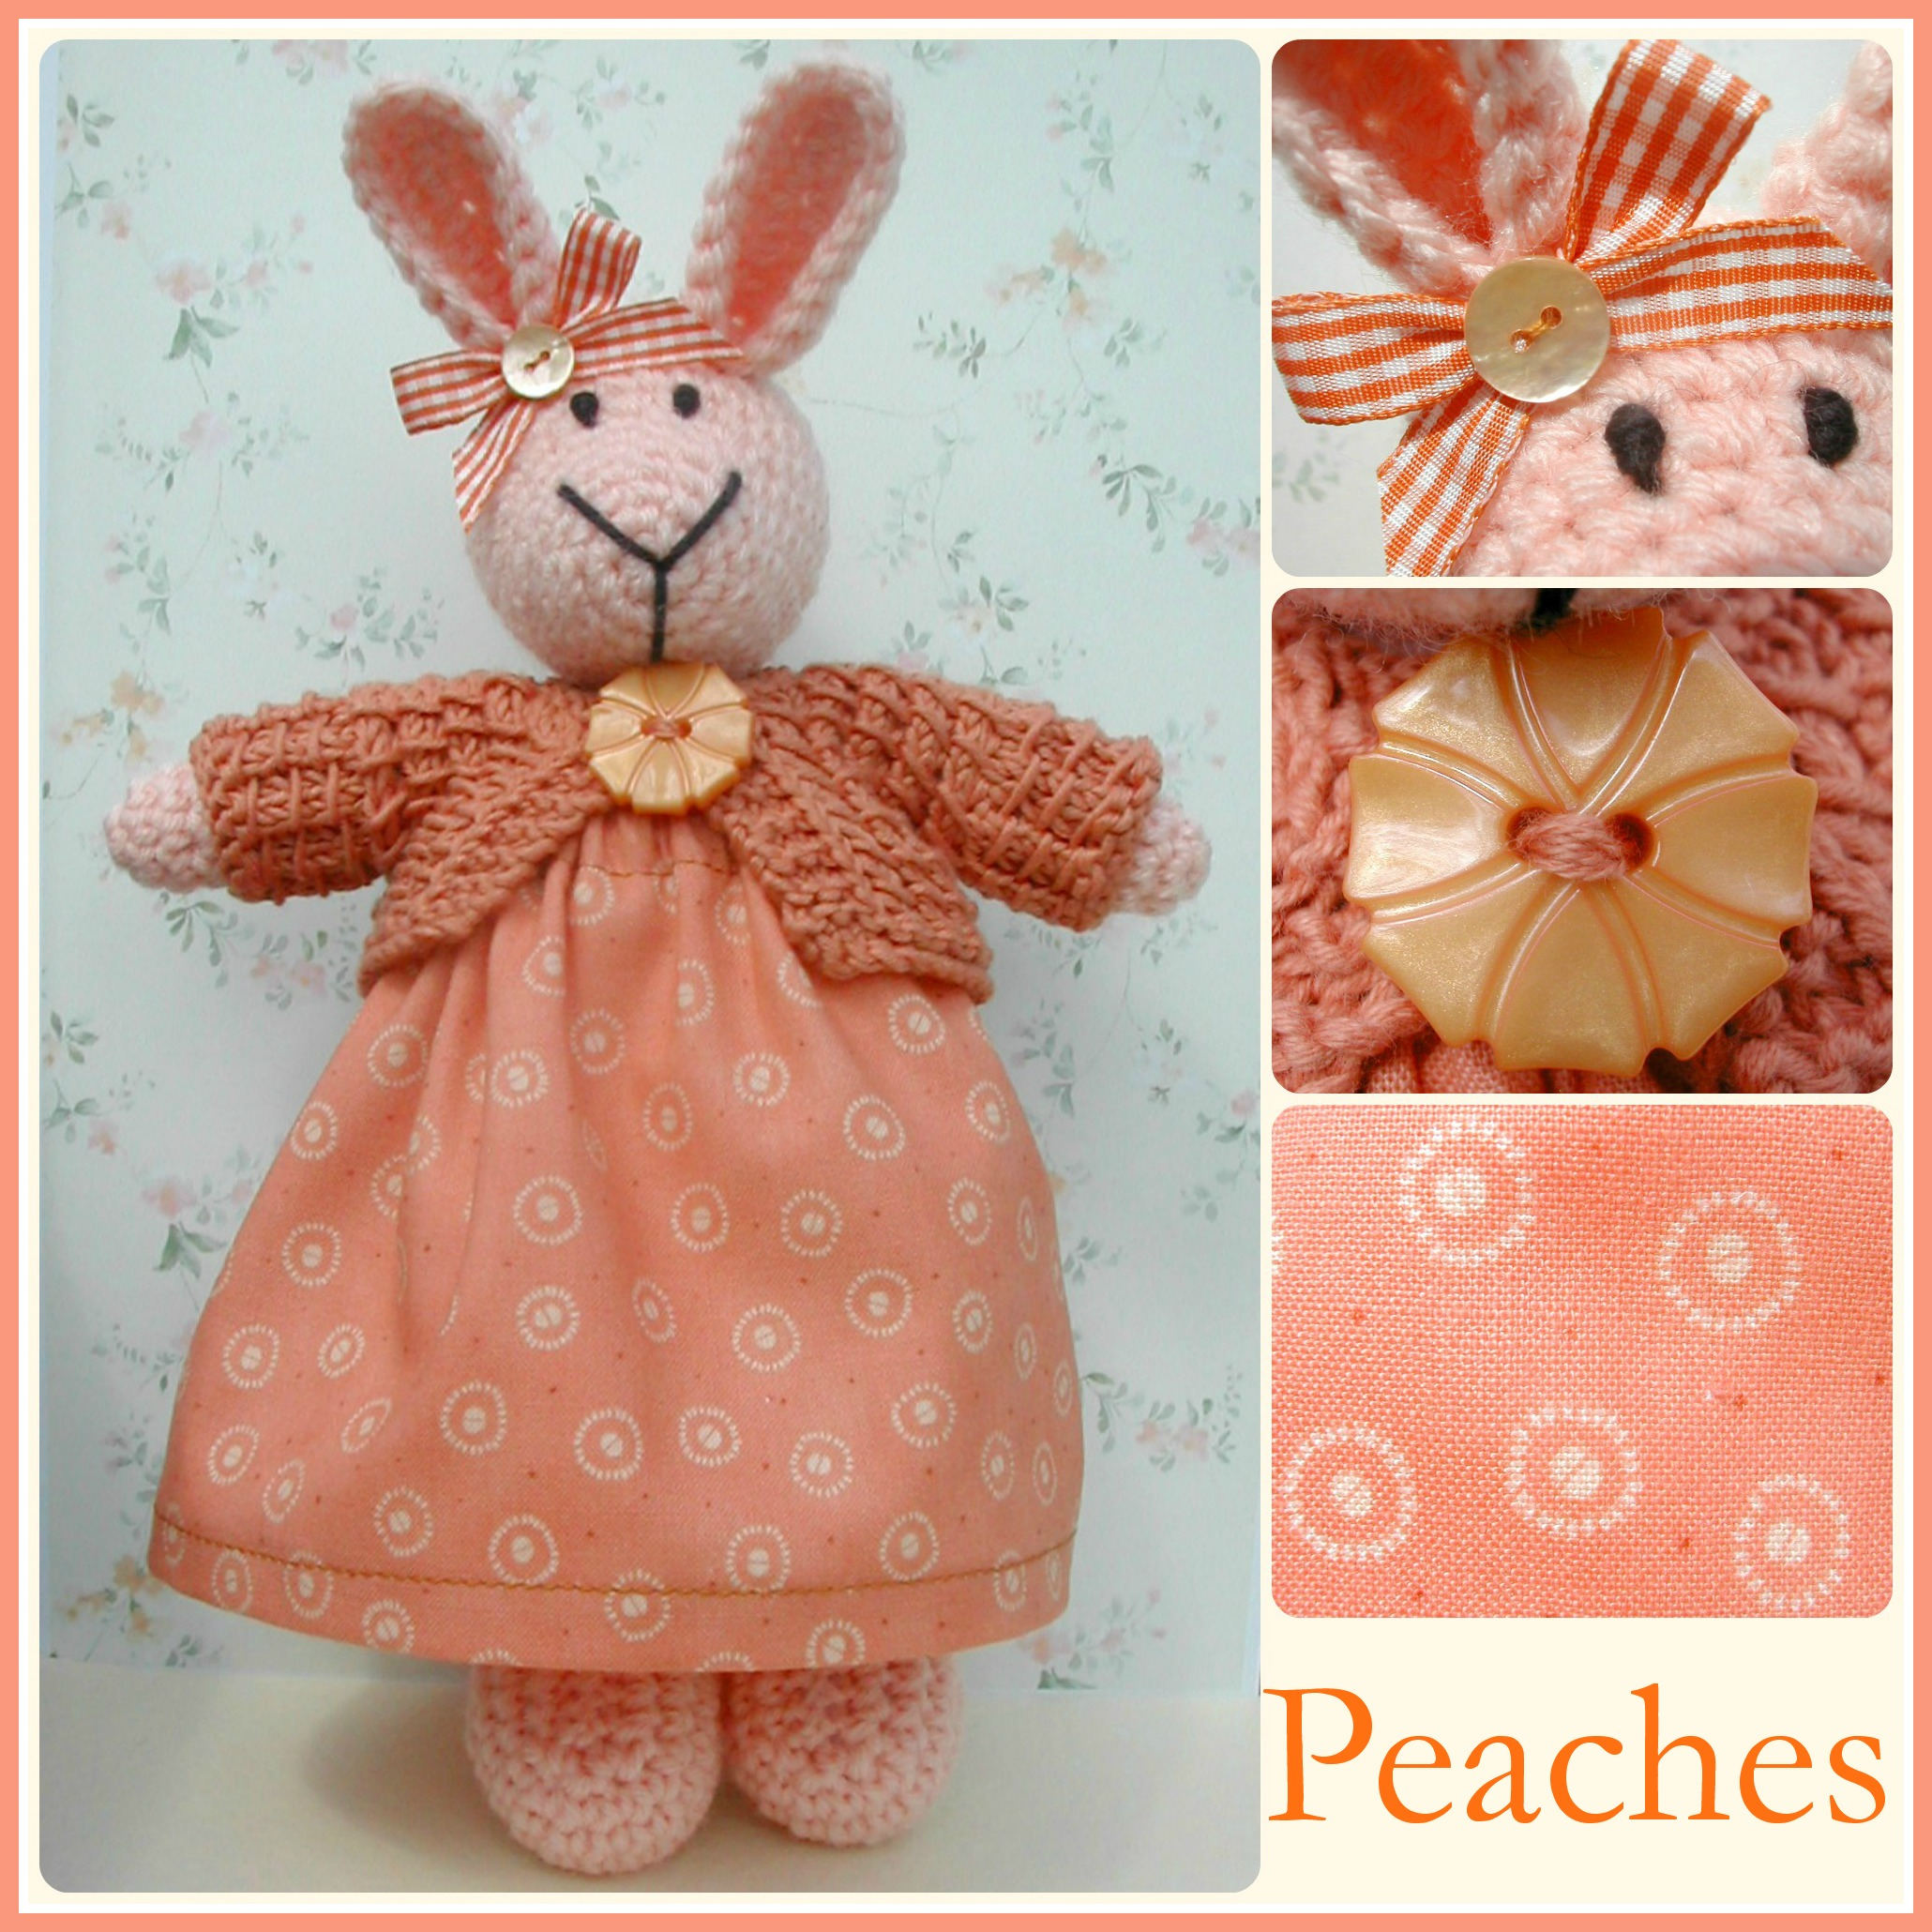 Peaches Collage